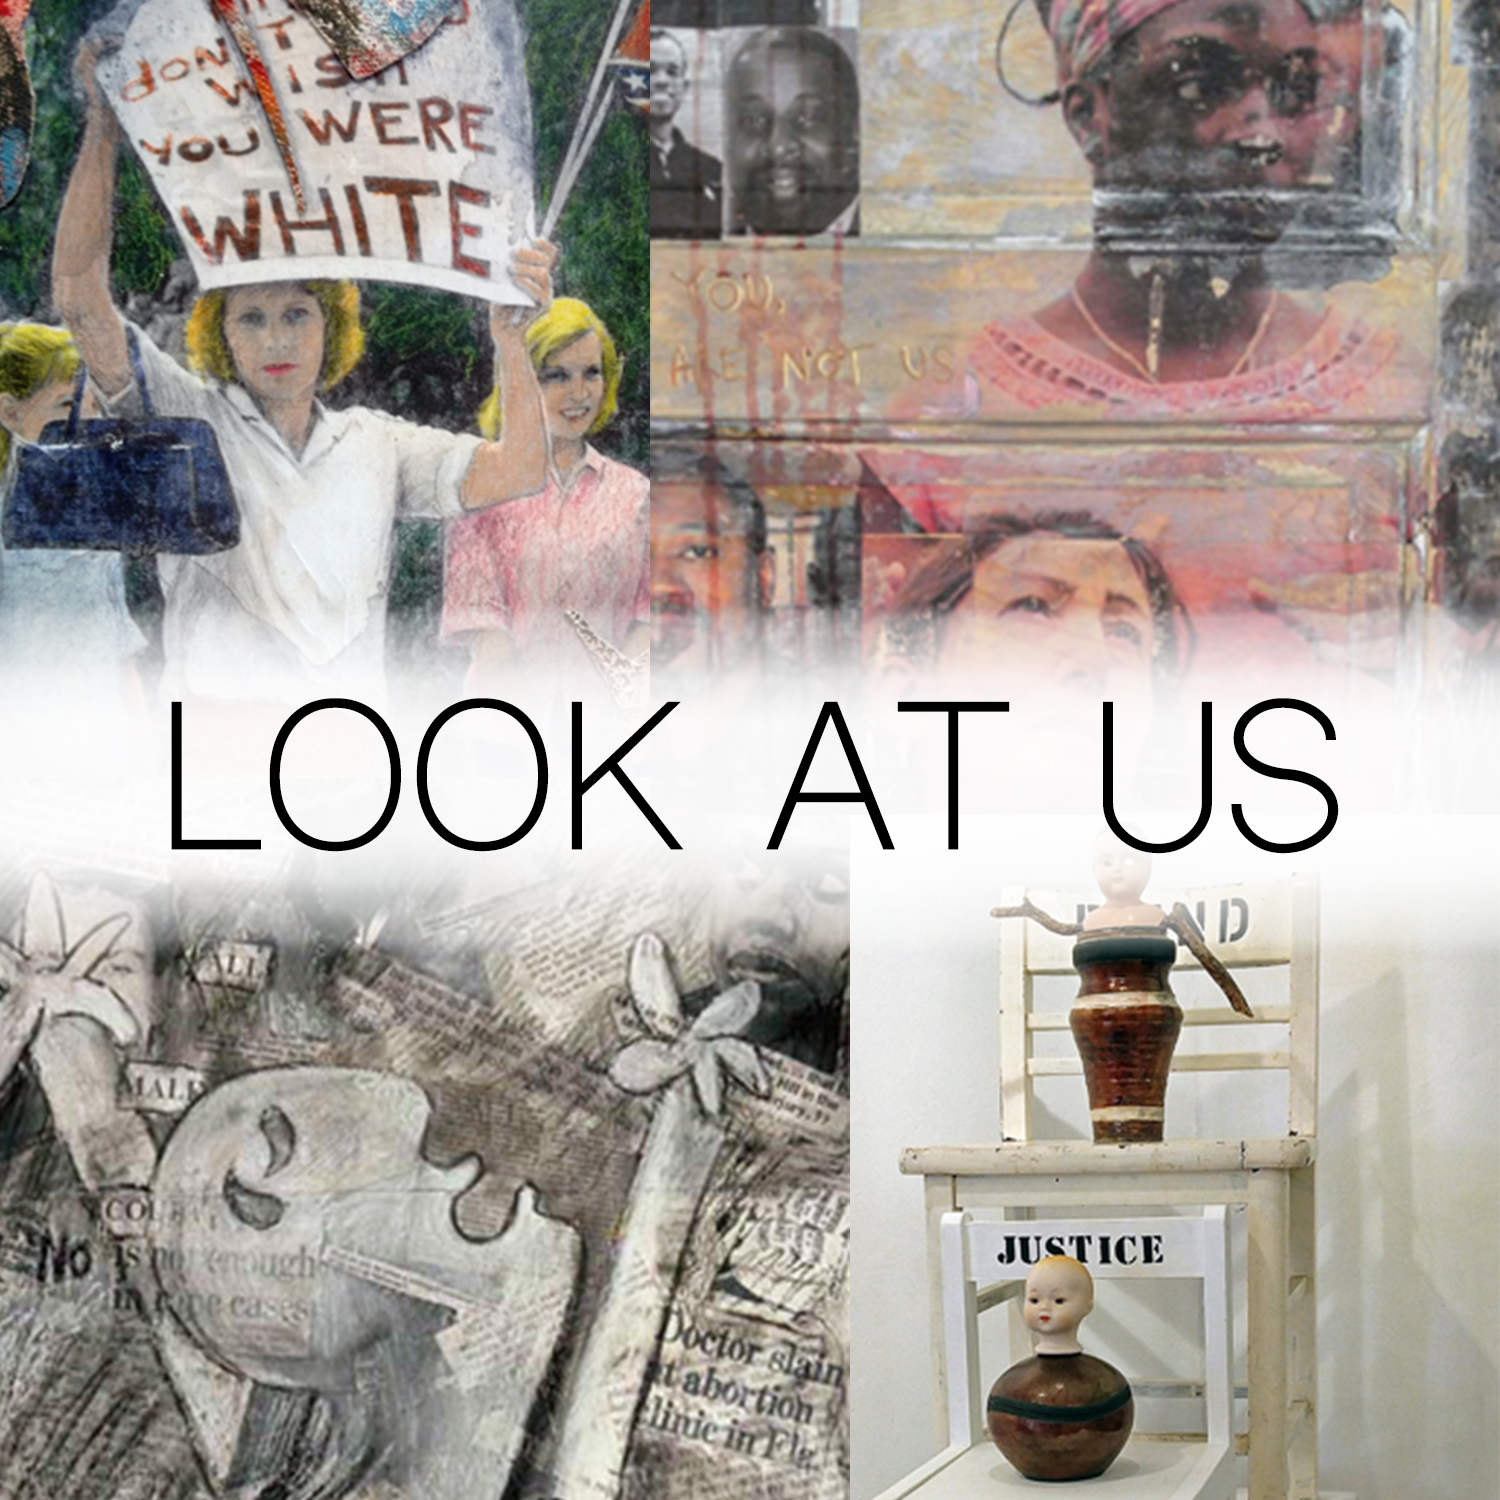 Hosted at DVAA Gallery 1  July 6th - 29th